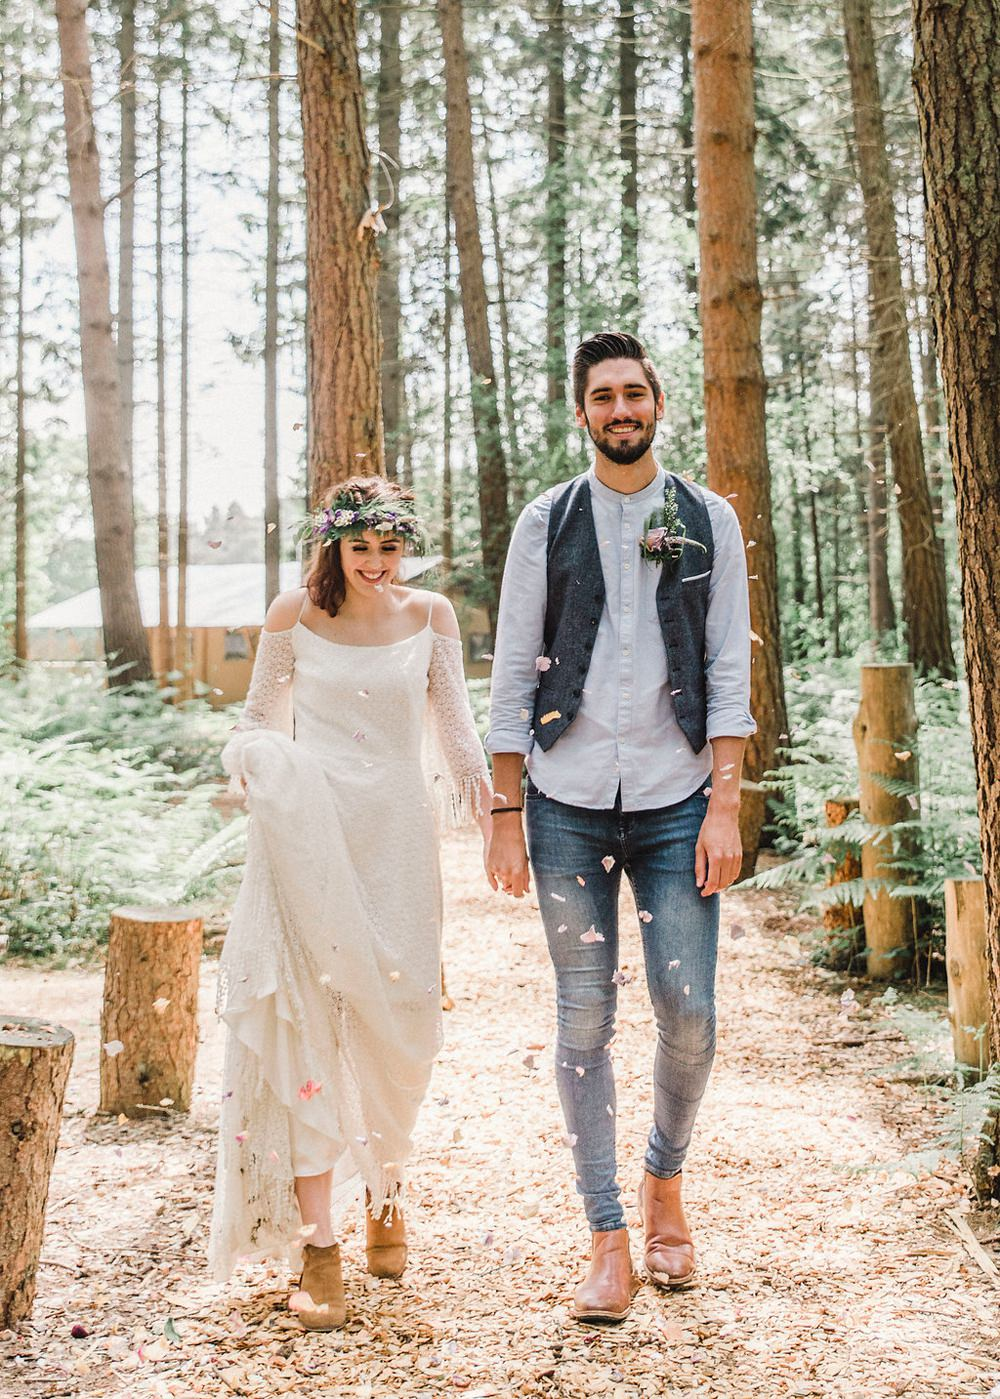 Confetti Throw Boho Woodland Wedding Ideas Camp Katur Emily Olivia Photography